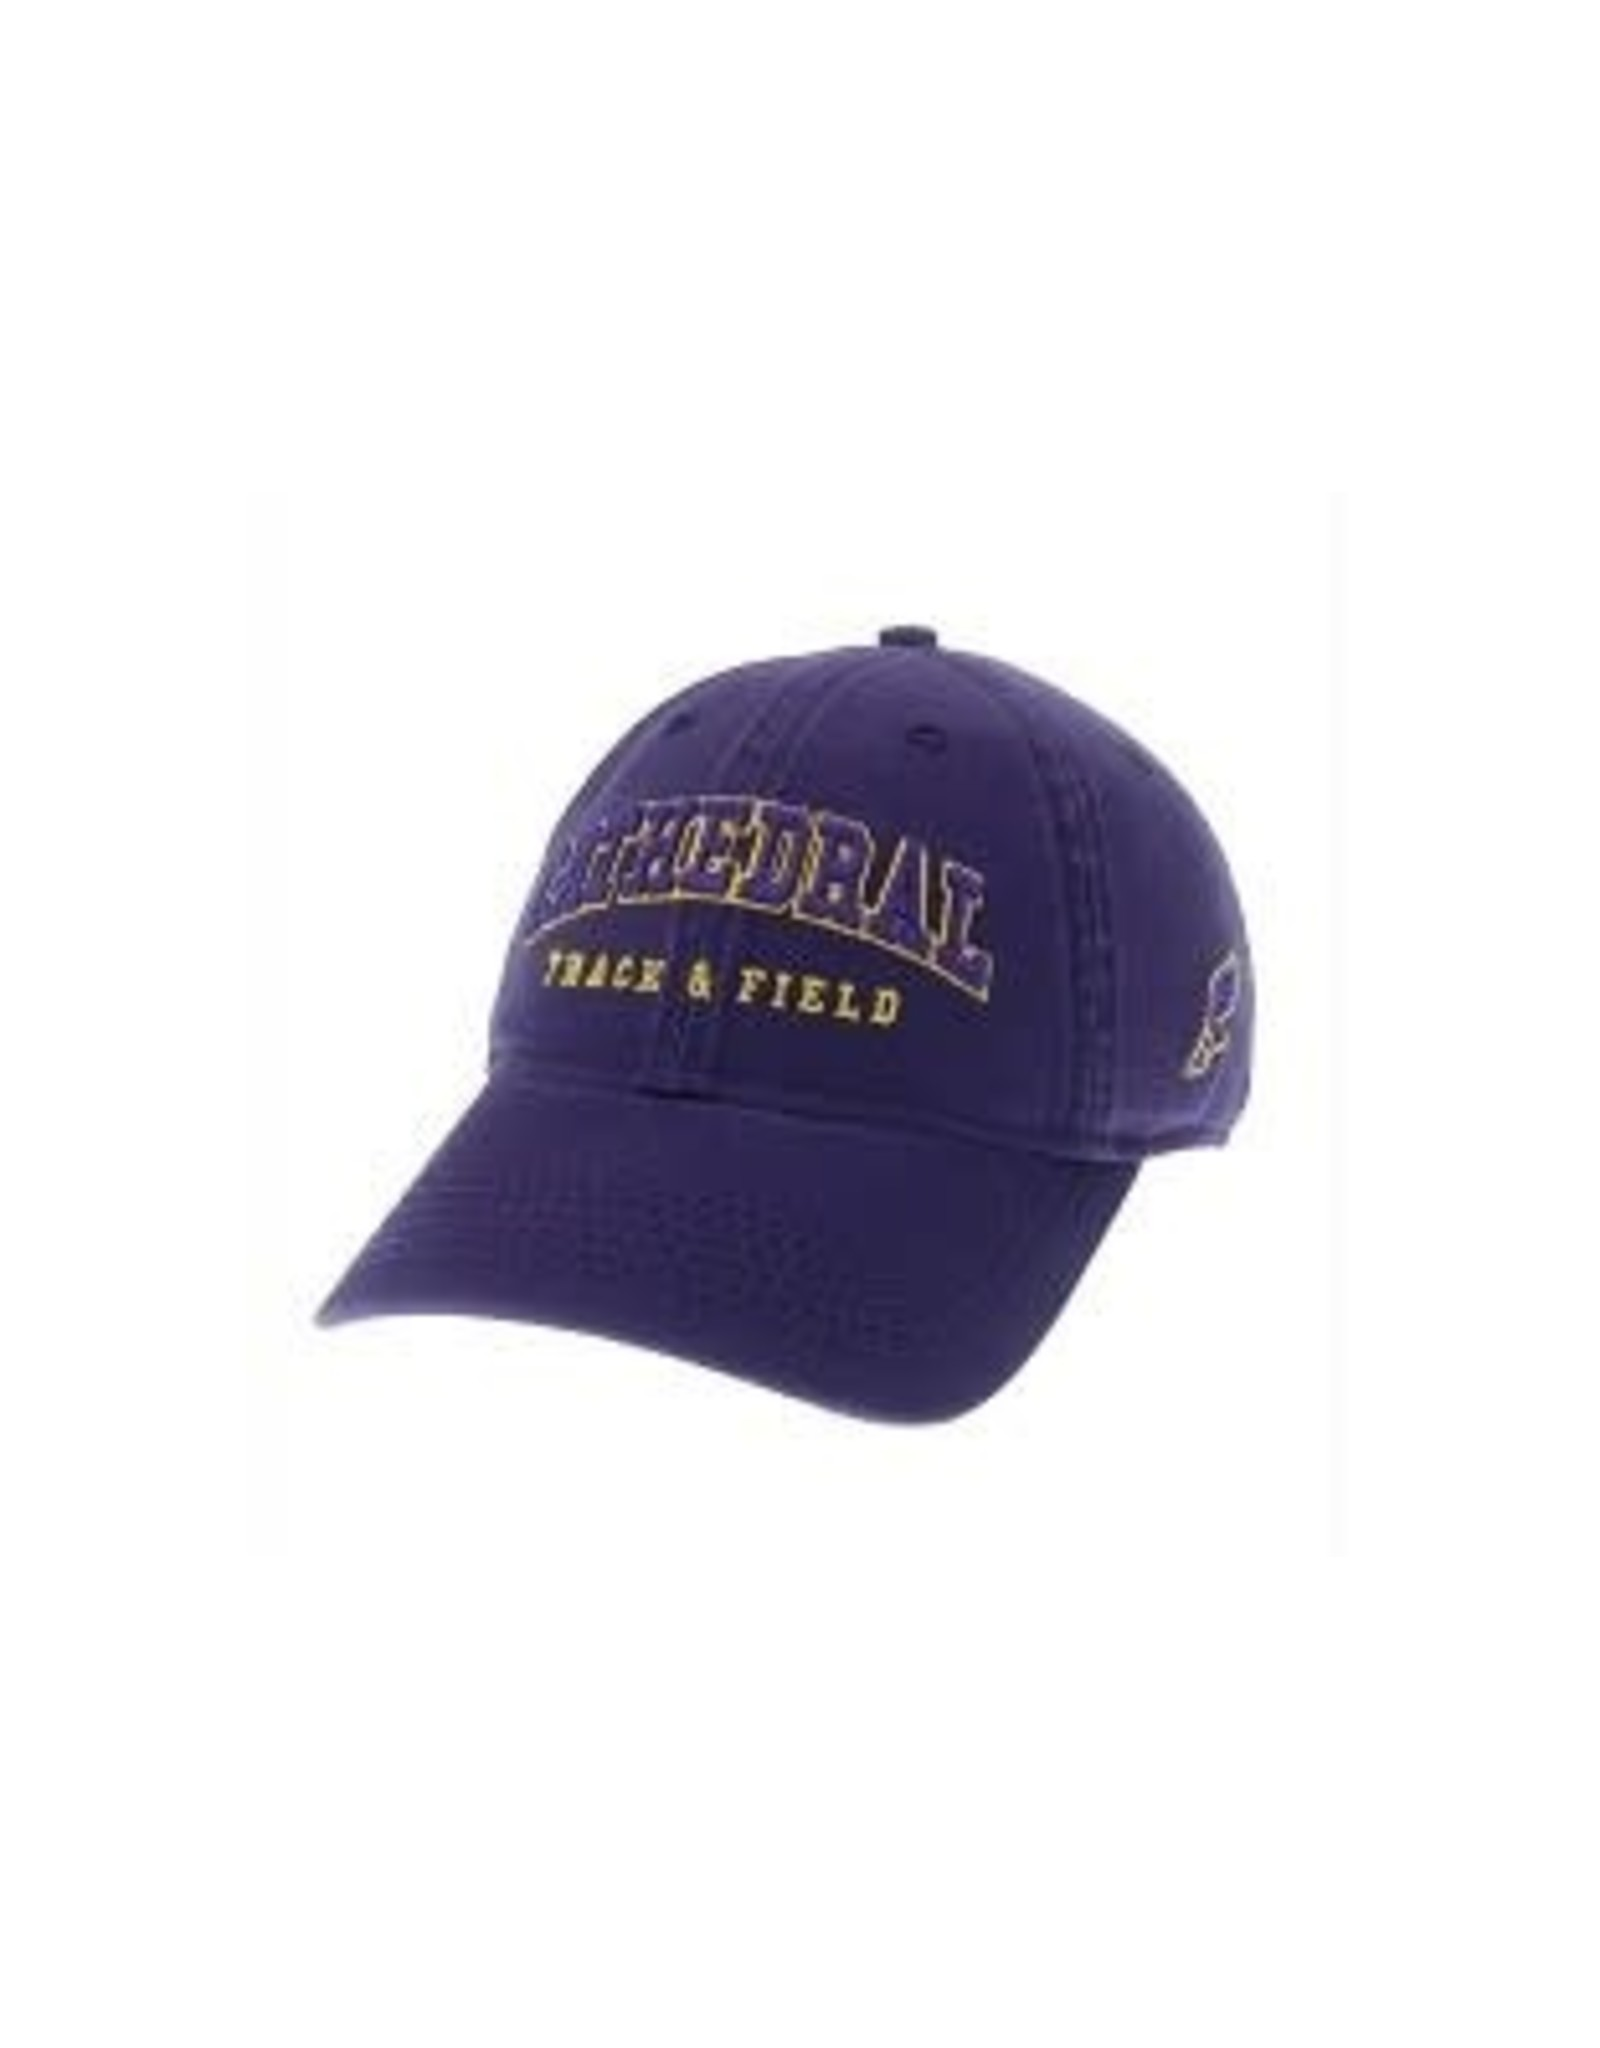 HAT-LEGACY-PUR TRACK & FIELD